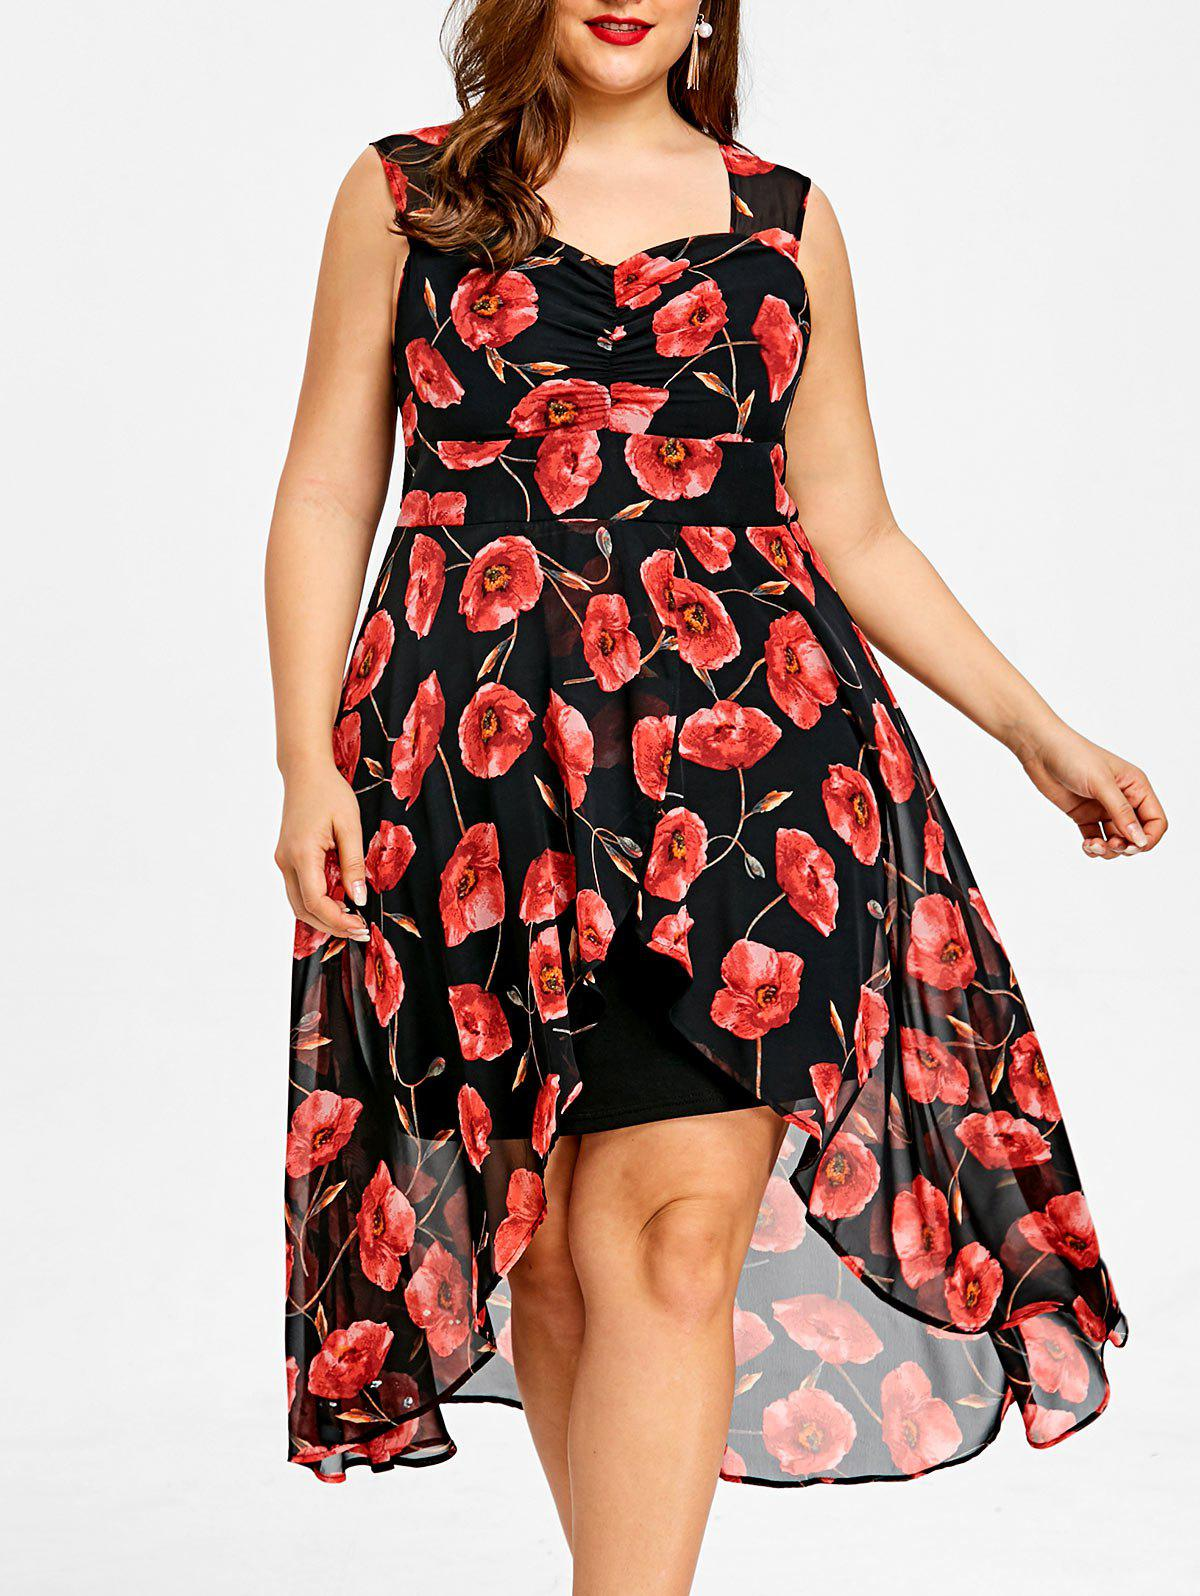 Plus Size Sweetheart Neck High Low Floral Dress floral v neck high low dress